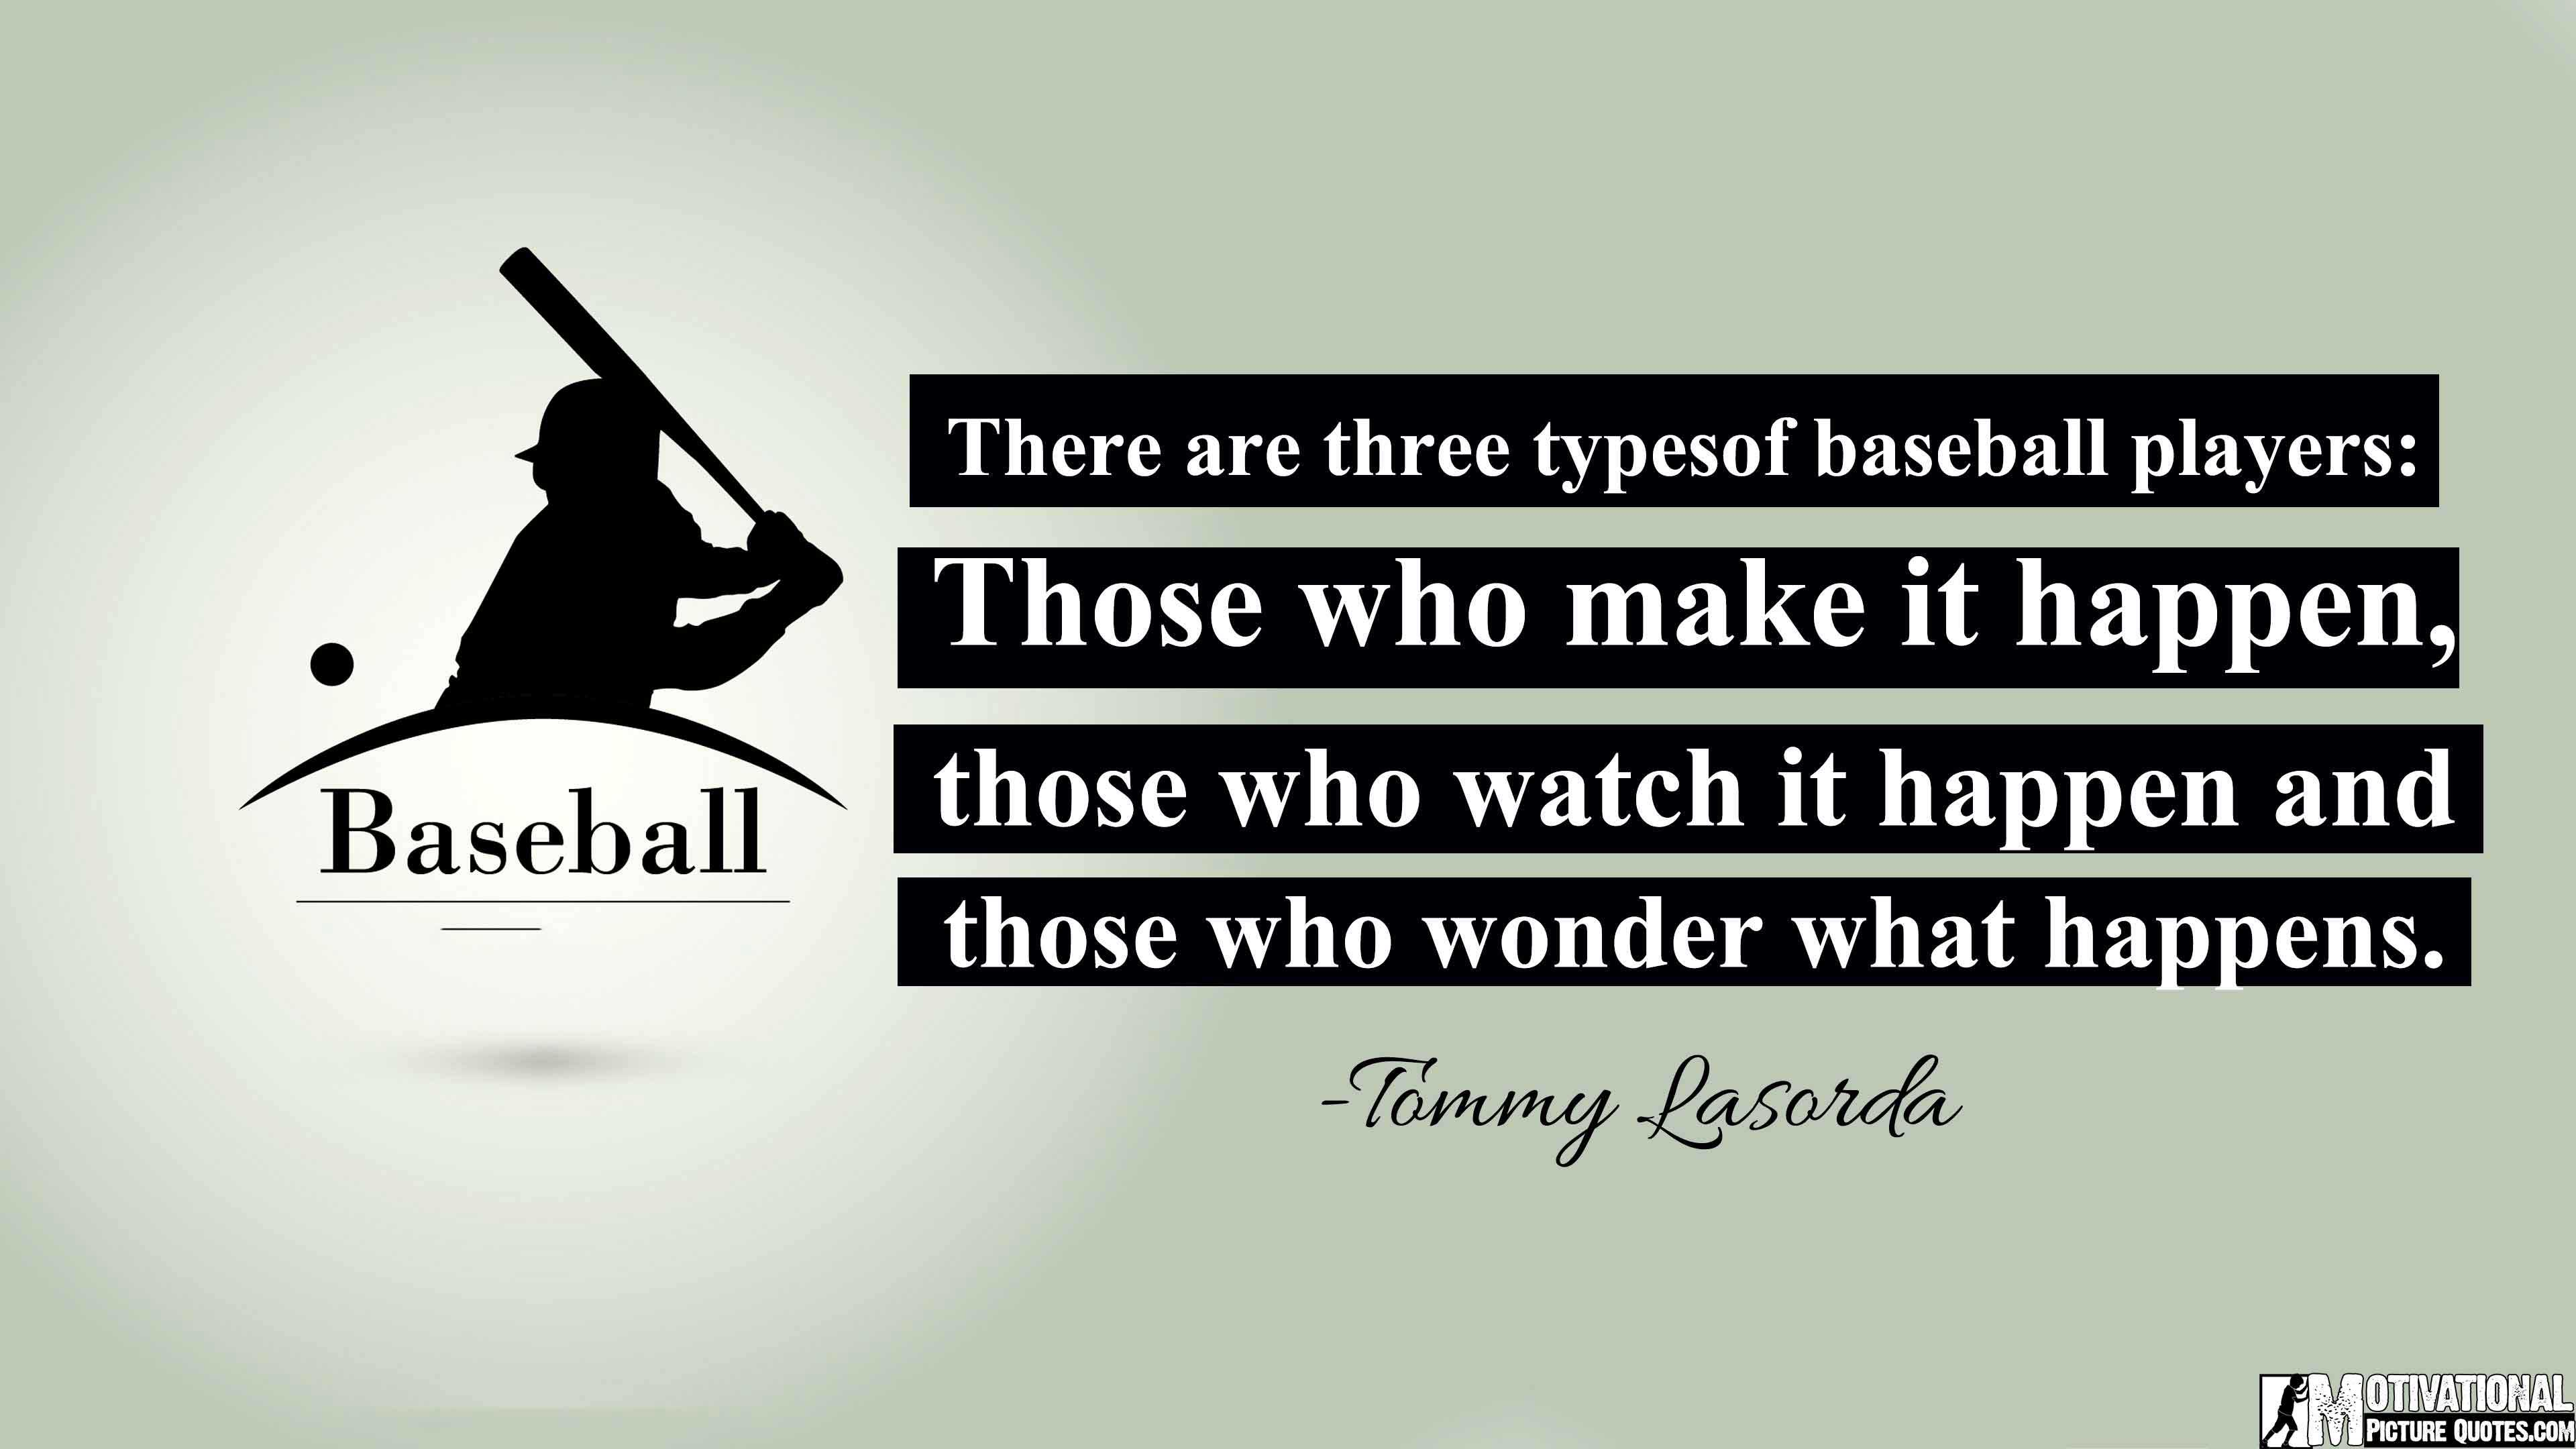 Baseball Quotes For Kids 20+ Inspirational Baseball Quotes Images | Insbright Baseball Quotes For Kids